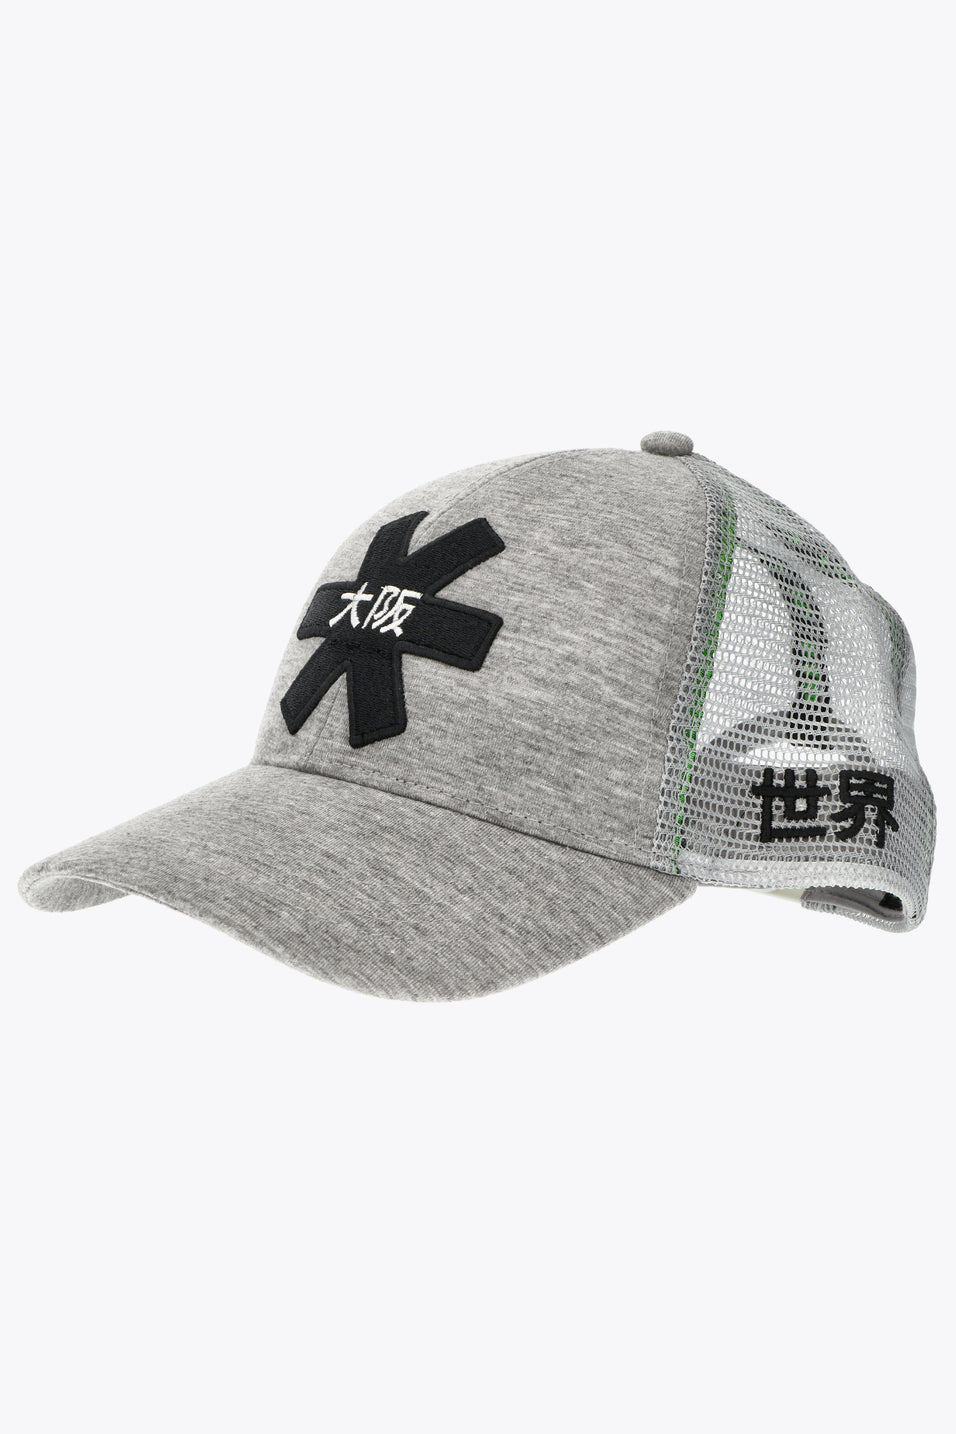 Osaka trucker cap grey